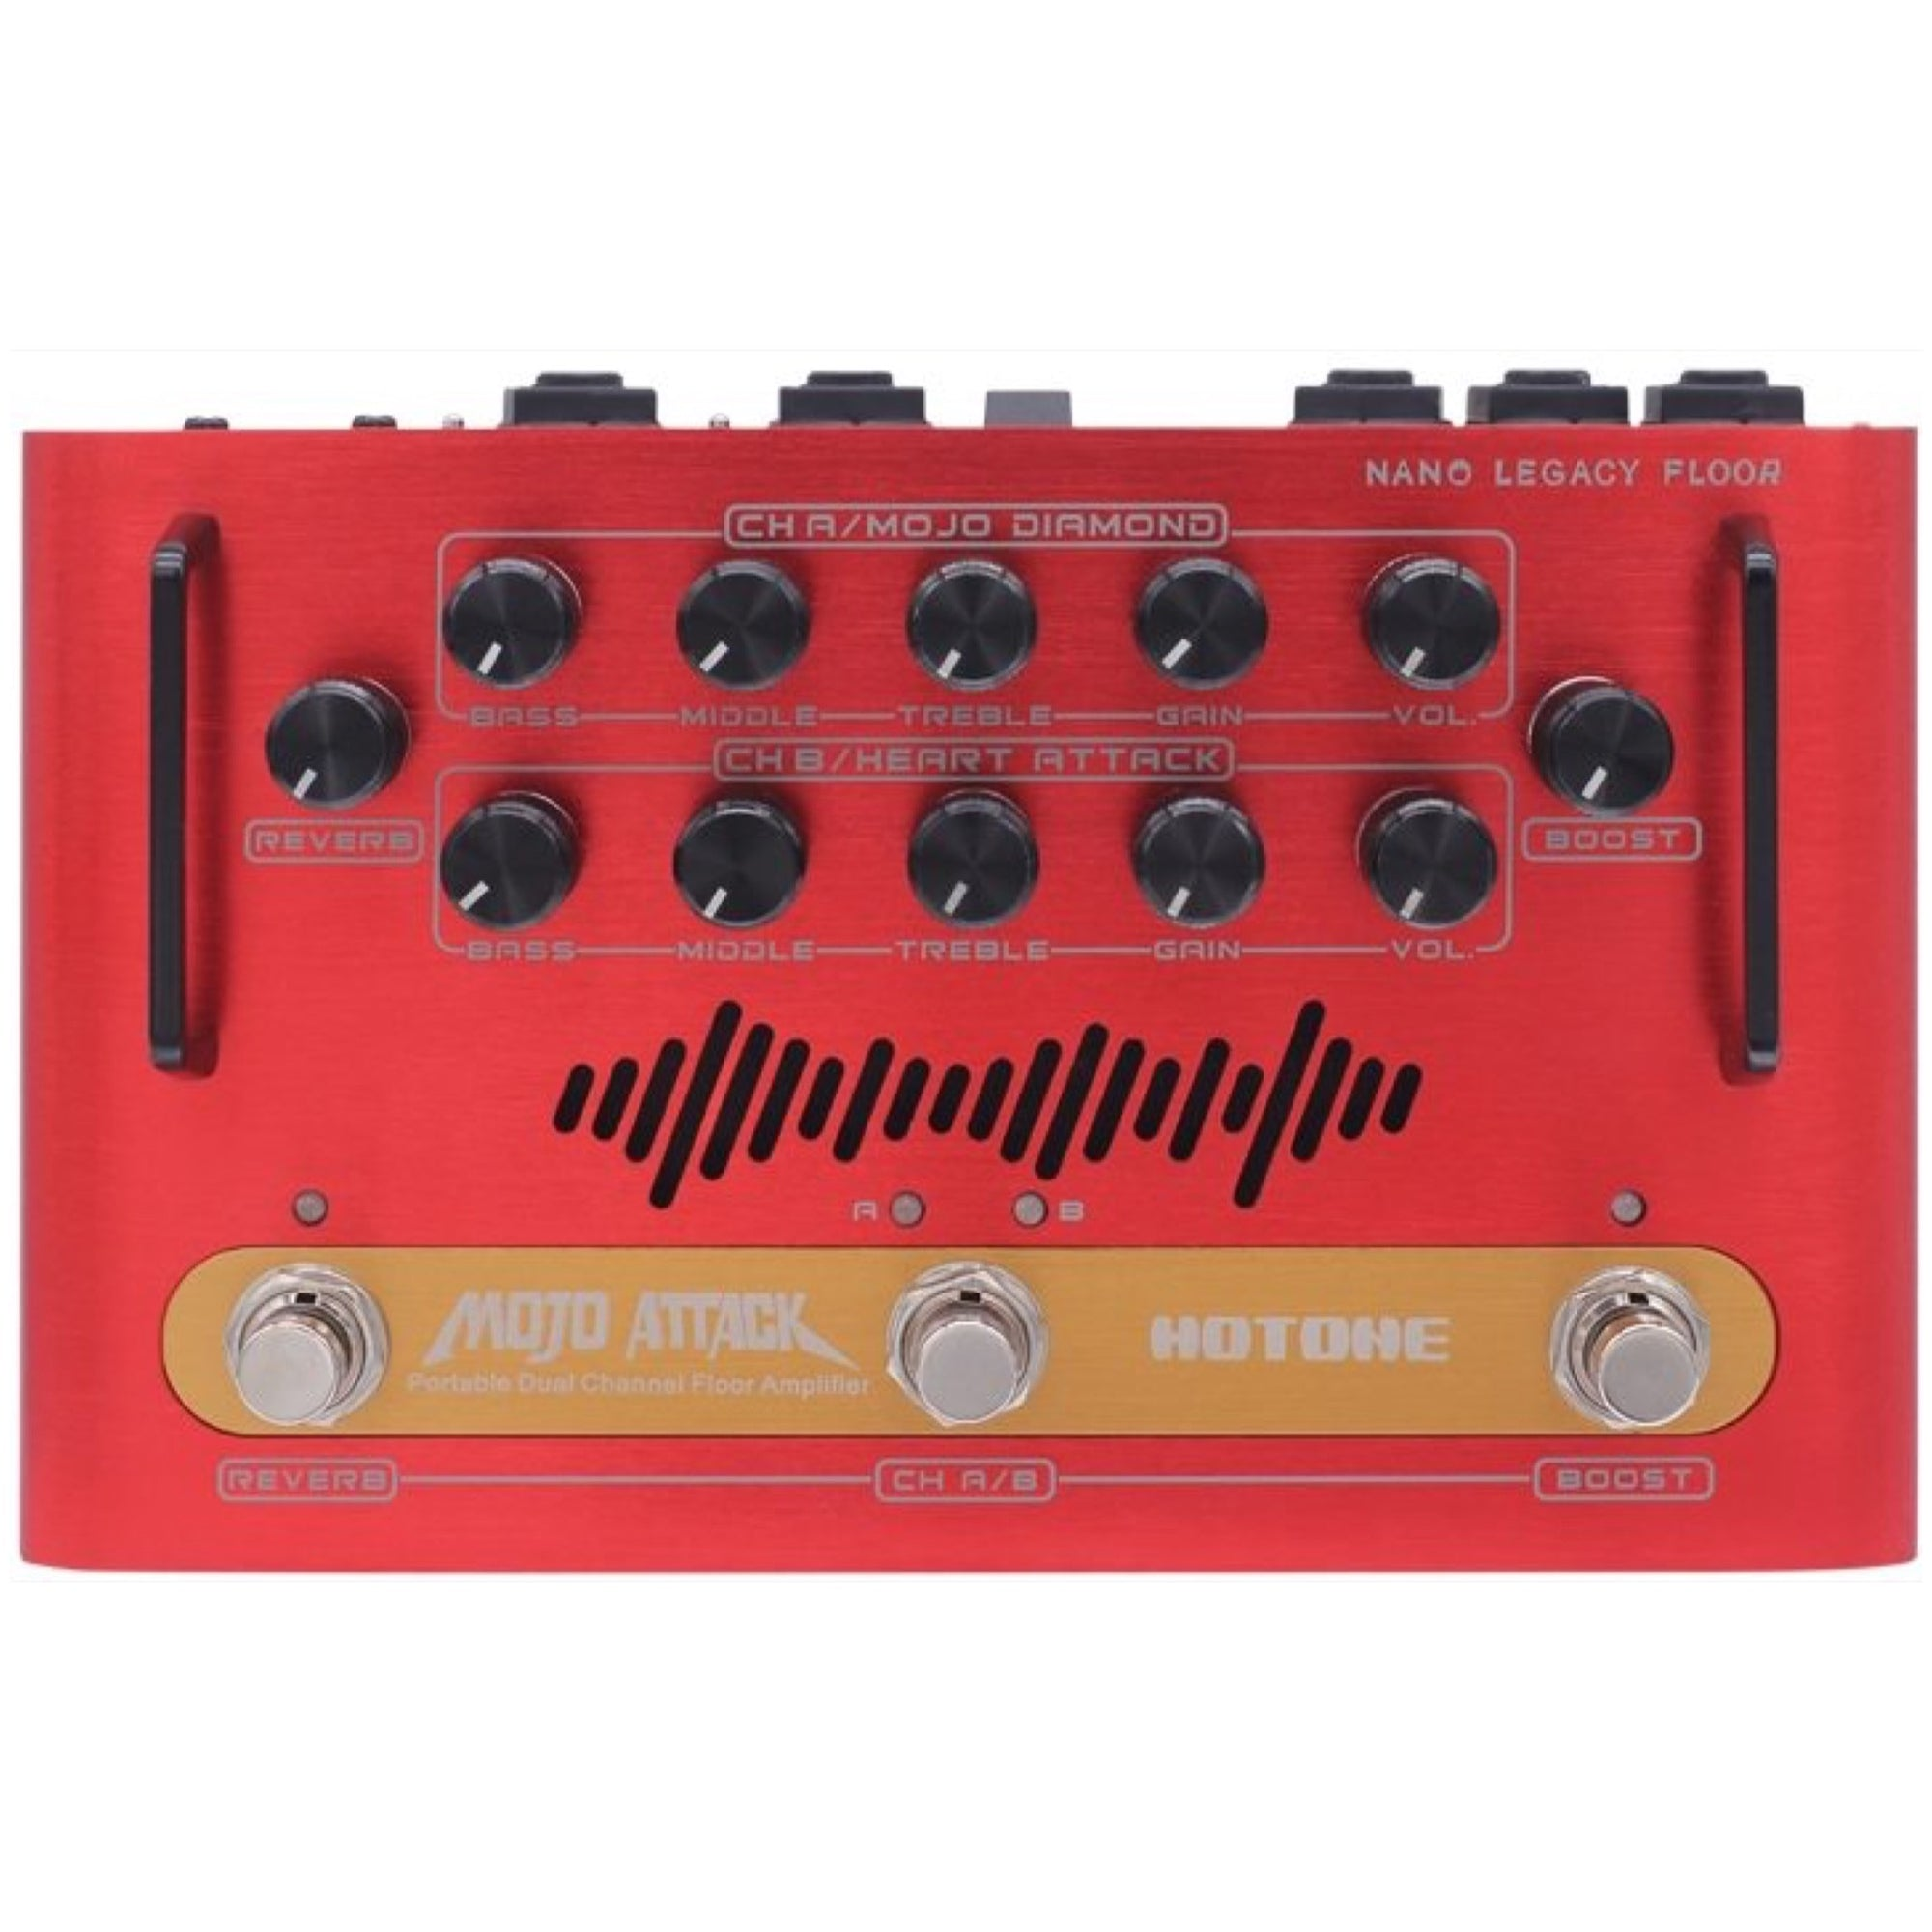 Hotone Mojo Attack Portable Guitar Amplifier Head (75 Watts)